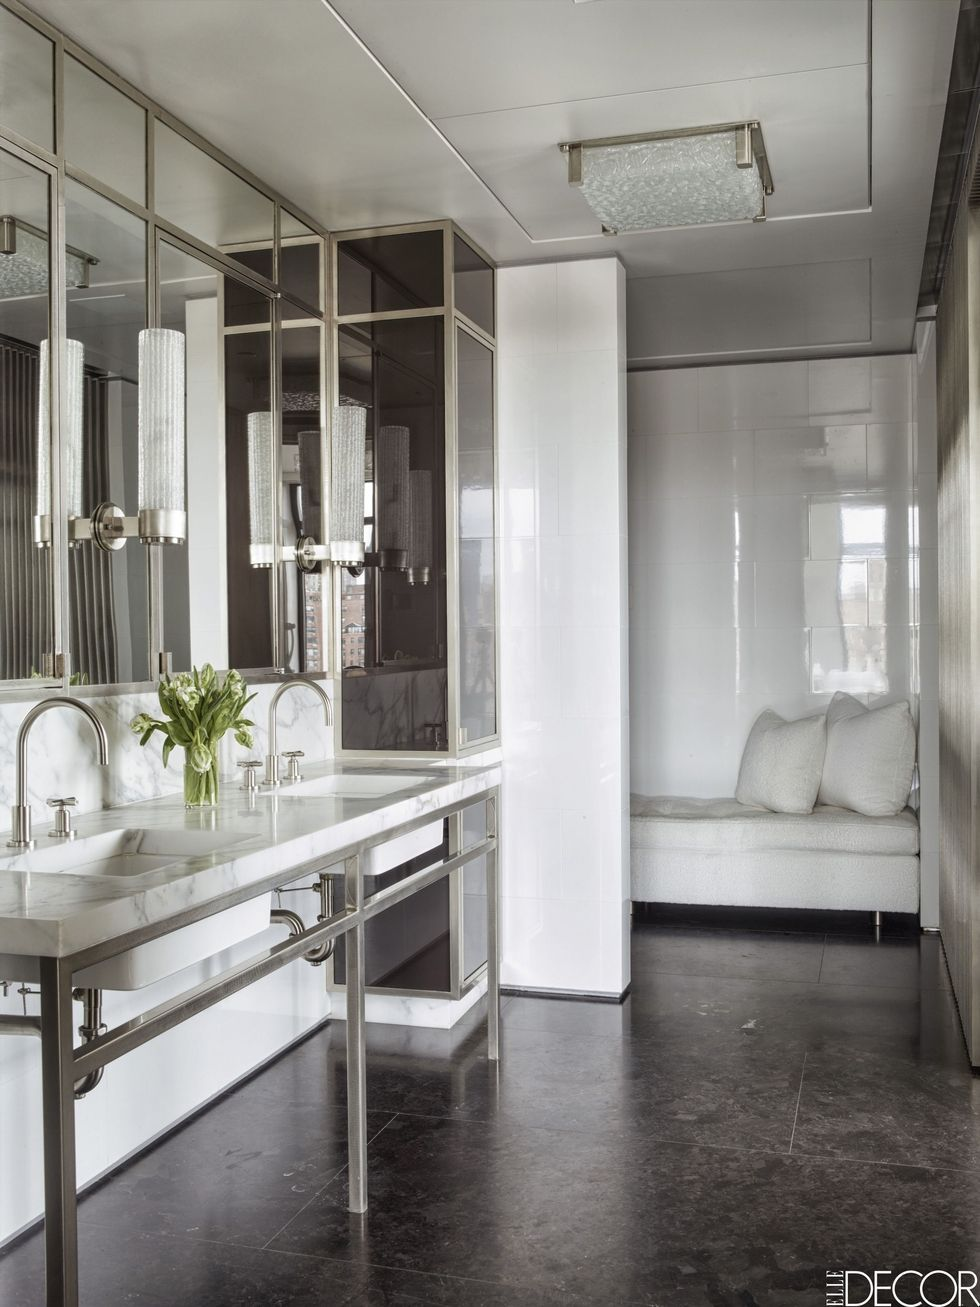 Design White Bathrooms 25 white bathroom design ideas decorating tips for all bathrooms